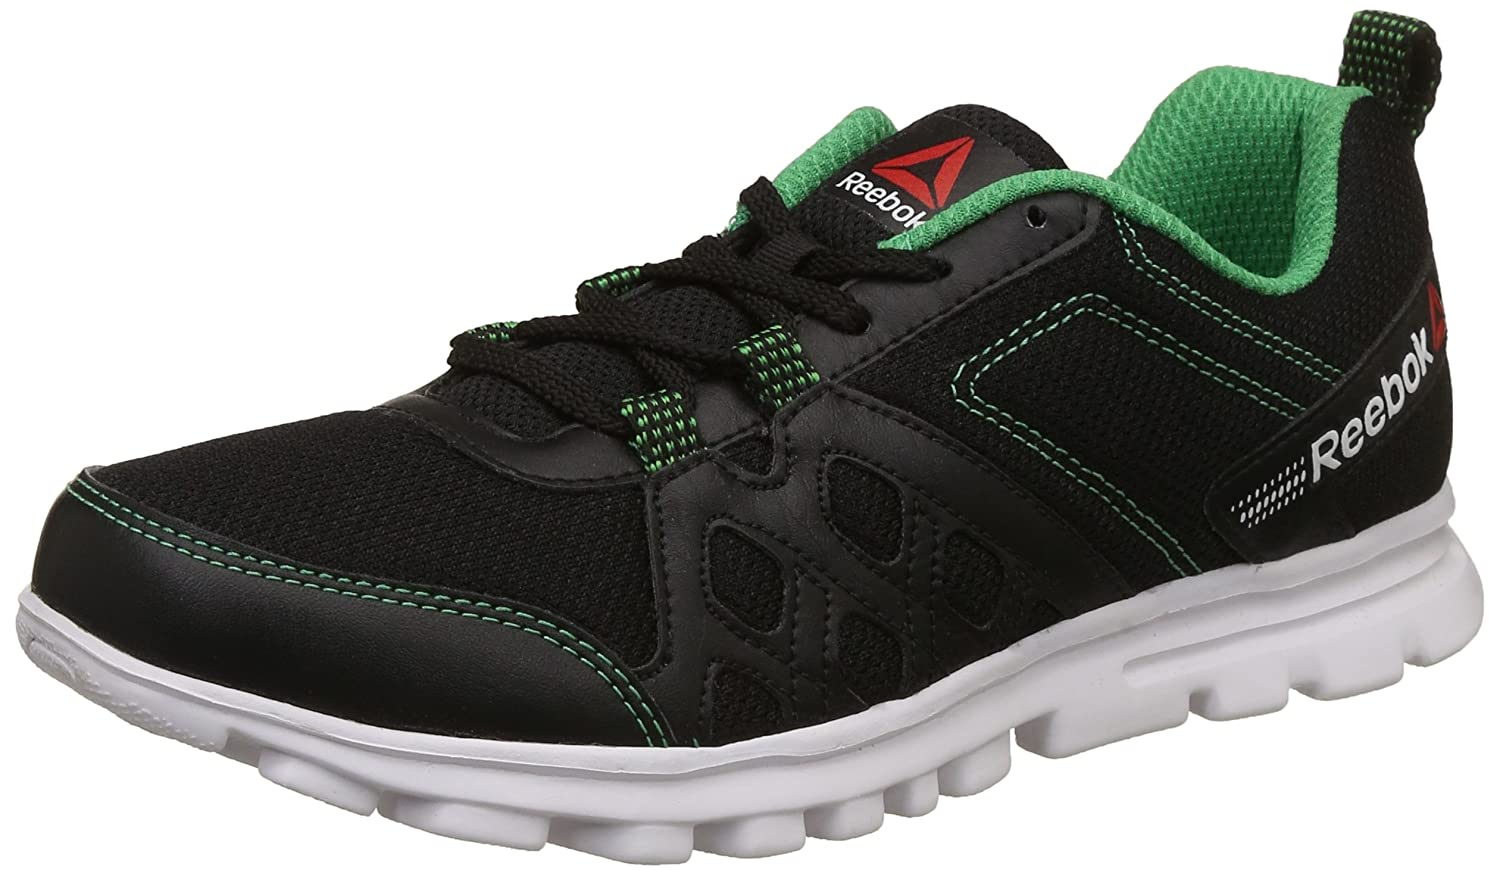 92aec71265a7 Reebok Men s Fusion Running Shoes  Buy Online at Low Prices in India -  Amazon.in